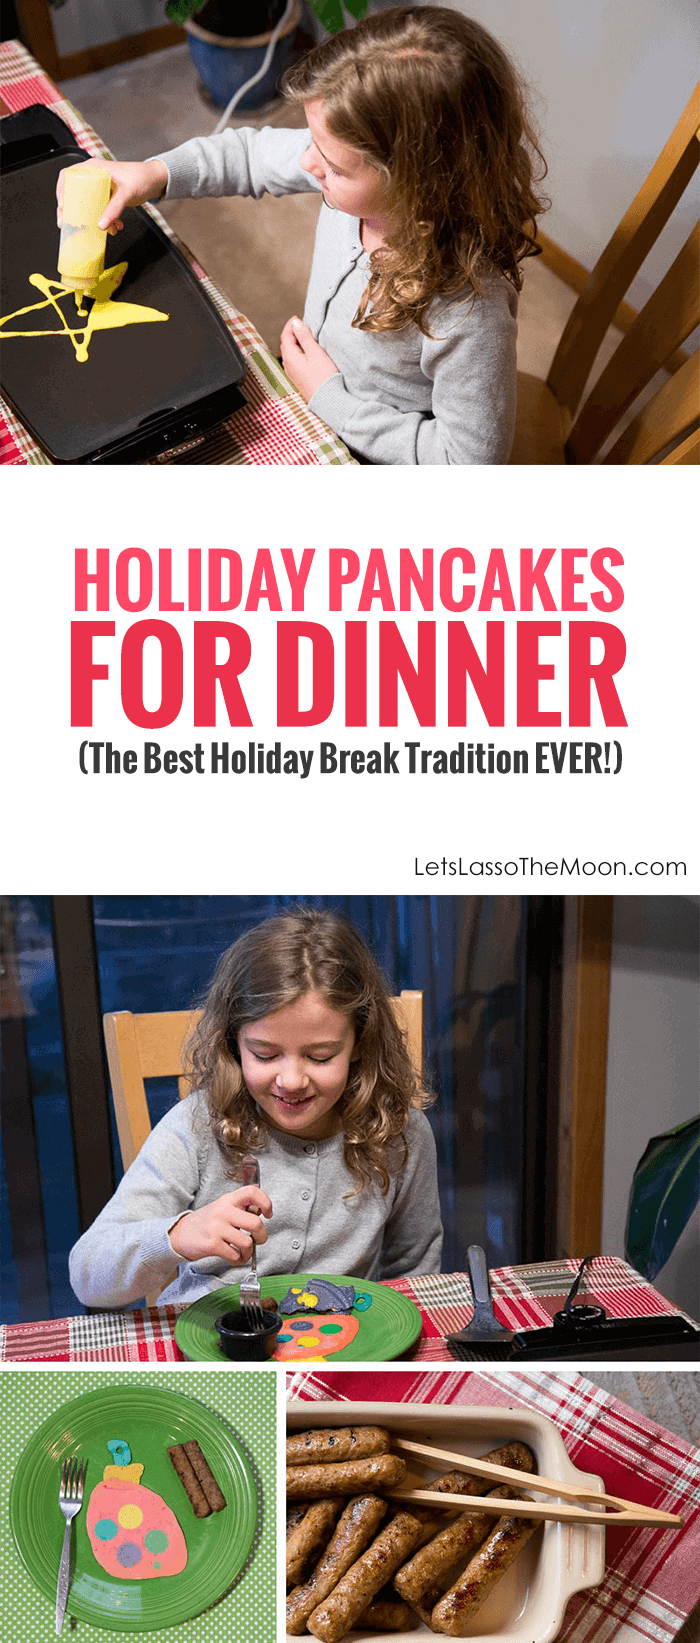 Slow and Simple Holiday Traditions: Making Christmas Pancake Art *This looks so fun, my kids would love it. Breakfast for dinner is AWESOME.